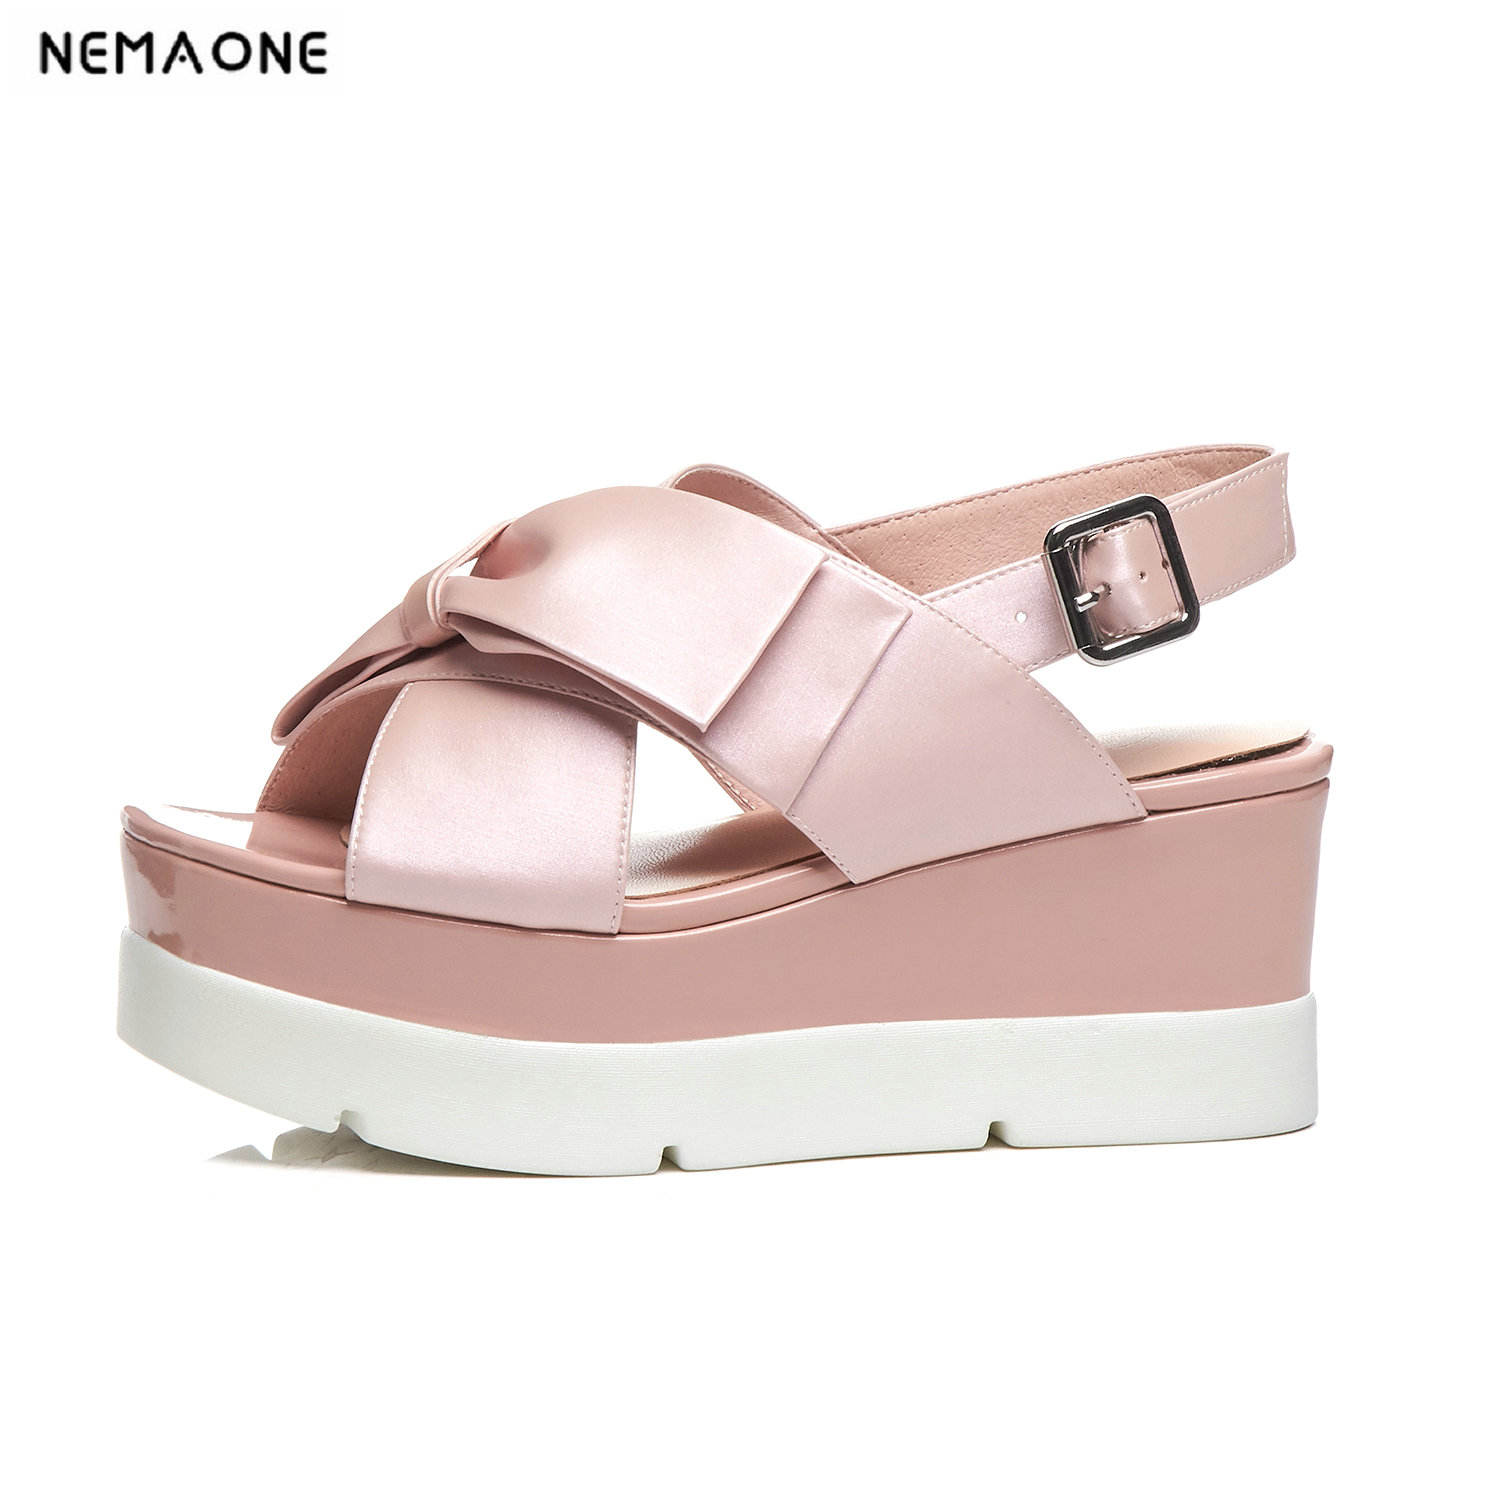 NEMAONE wedges High heels platform women sandals genuine leather ladies shoes woman women sandals large size